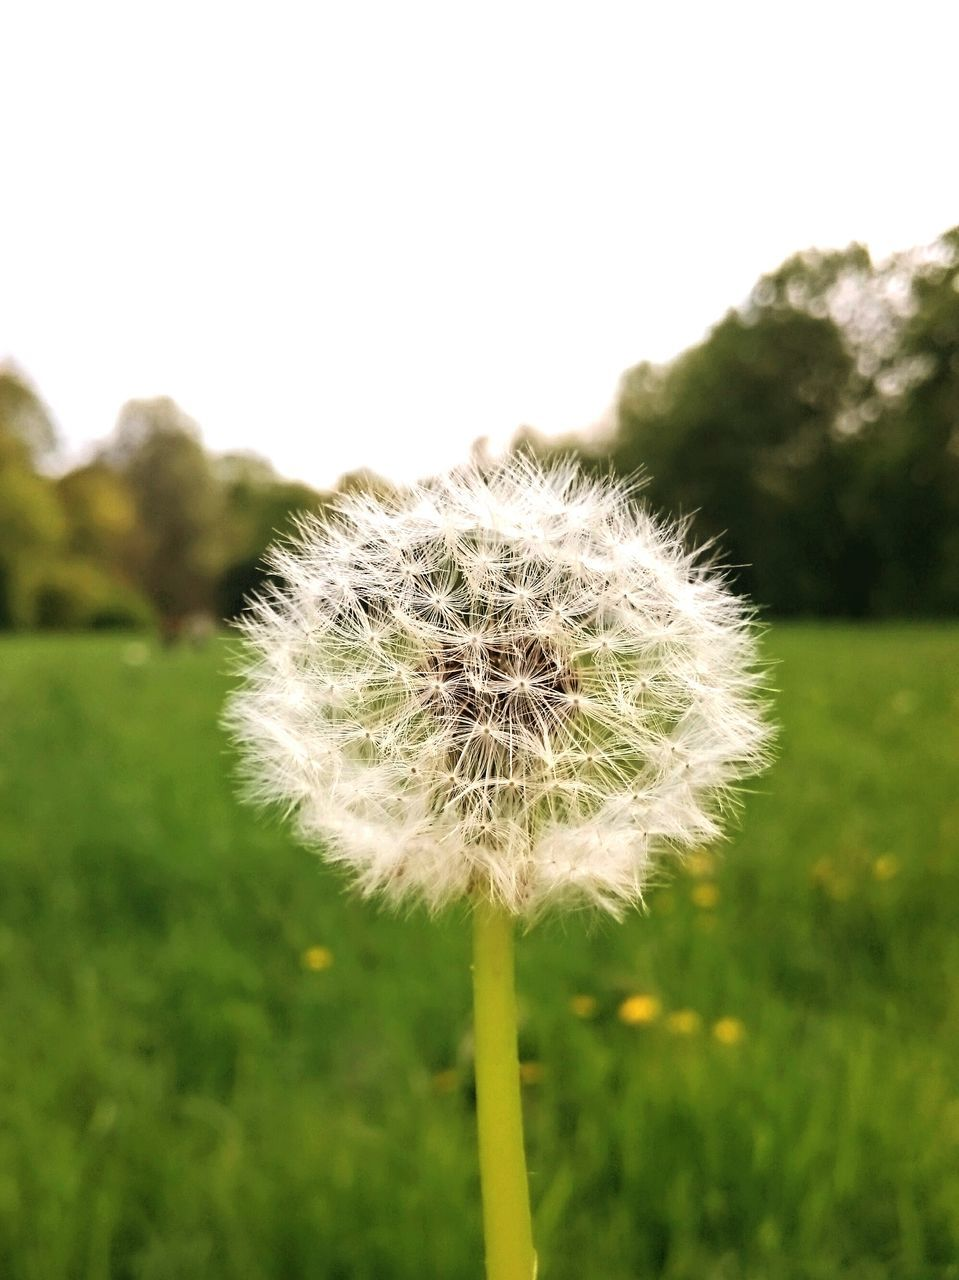 flower, growth, dandelion, nature, fragility, beauty in nature, focus on foreground, plant, freshness, close-up, green color, flower head, day, field, outdoors, grass, no people